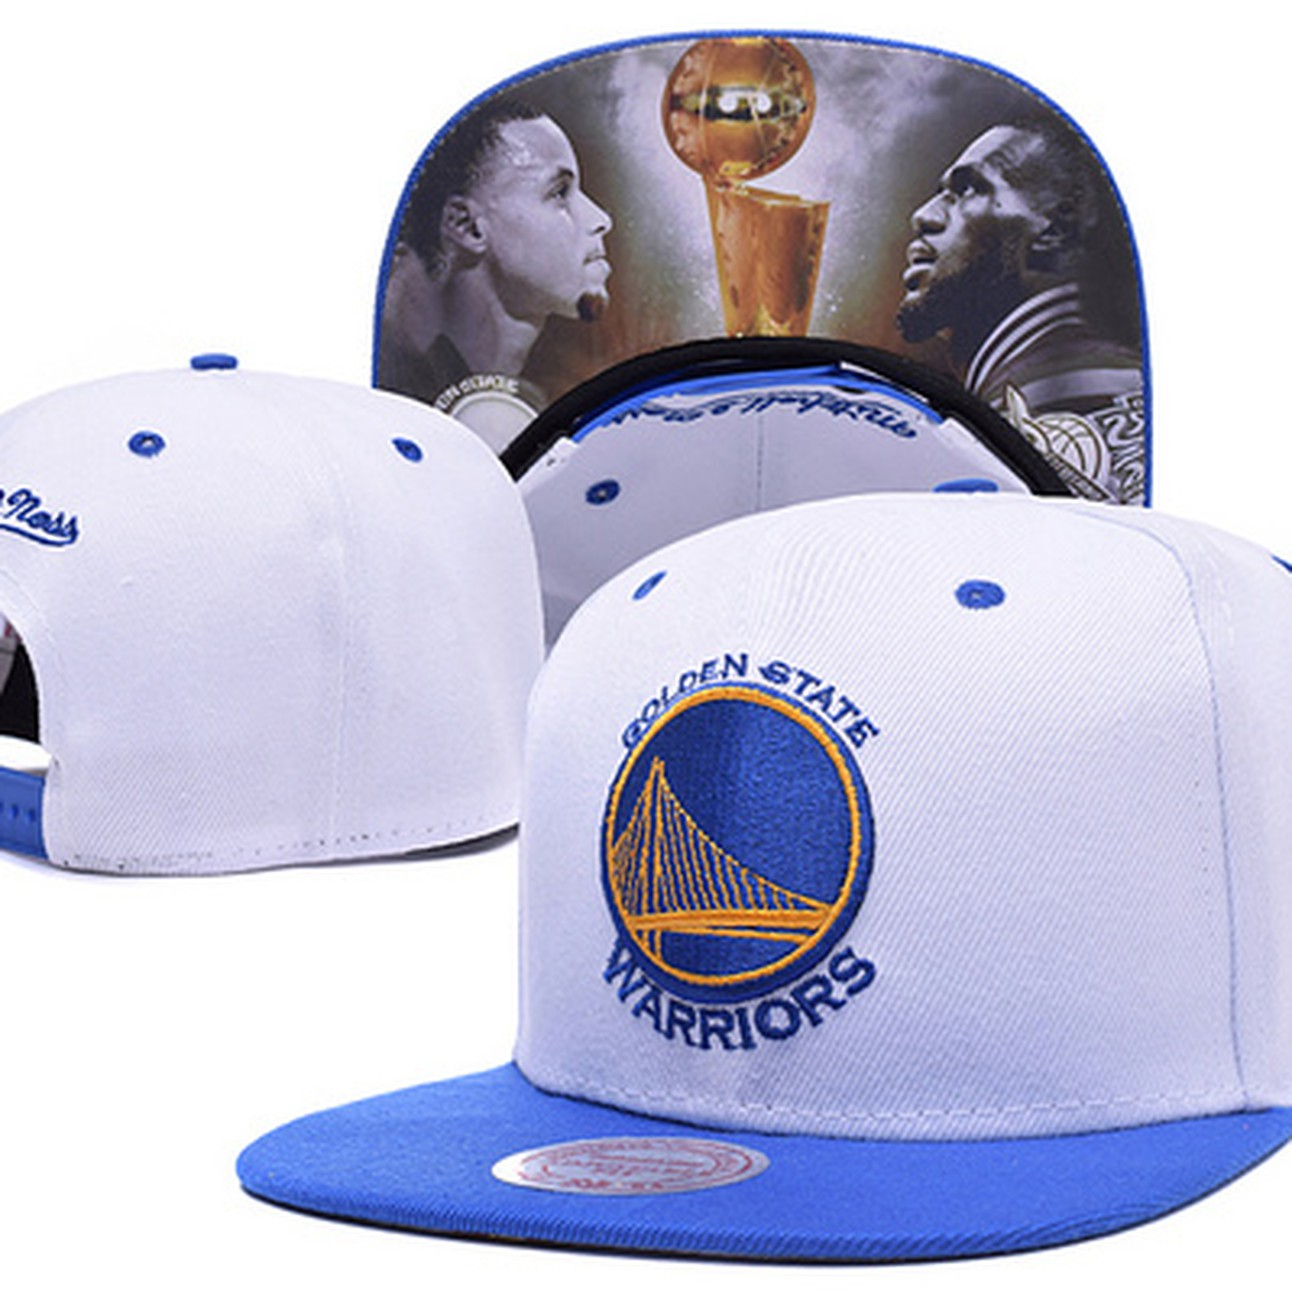 4aec36e4833 New Golden State Warriors 2015 Finals Curry Lebron White Hat Cap Snapback  Adjustable